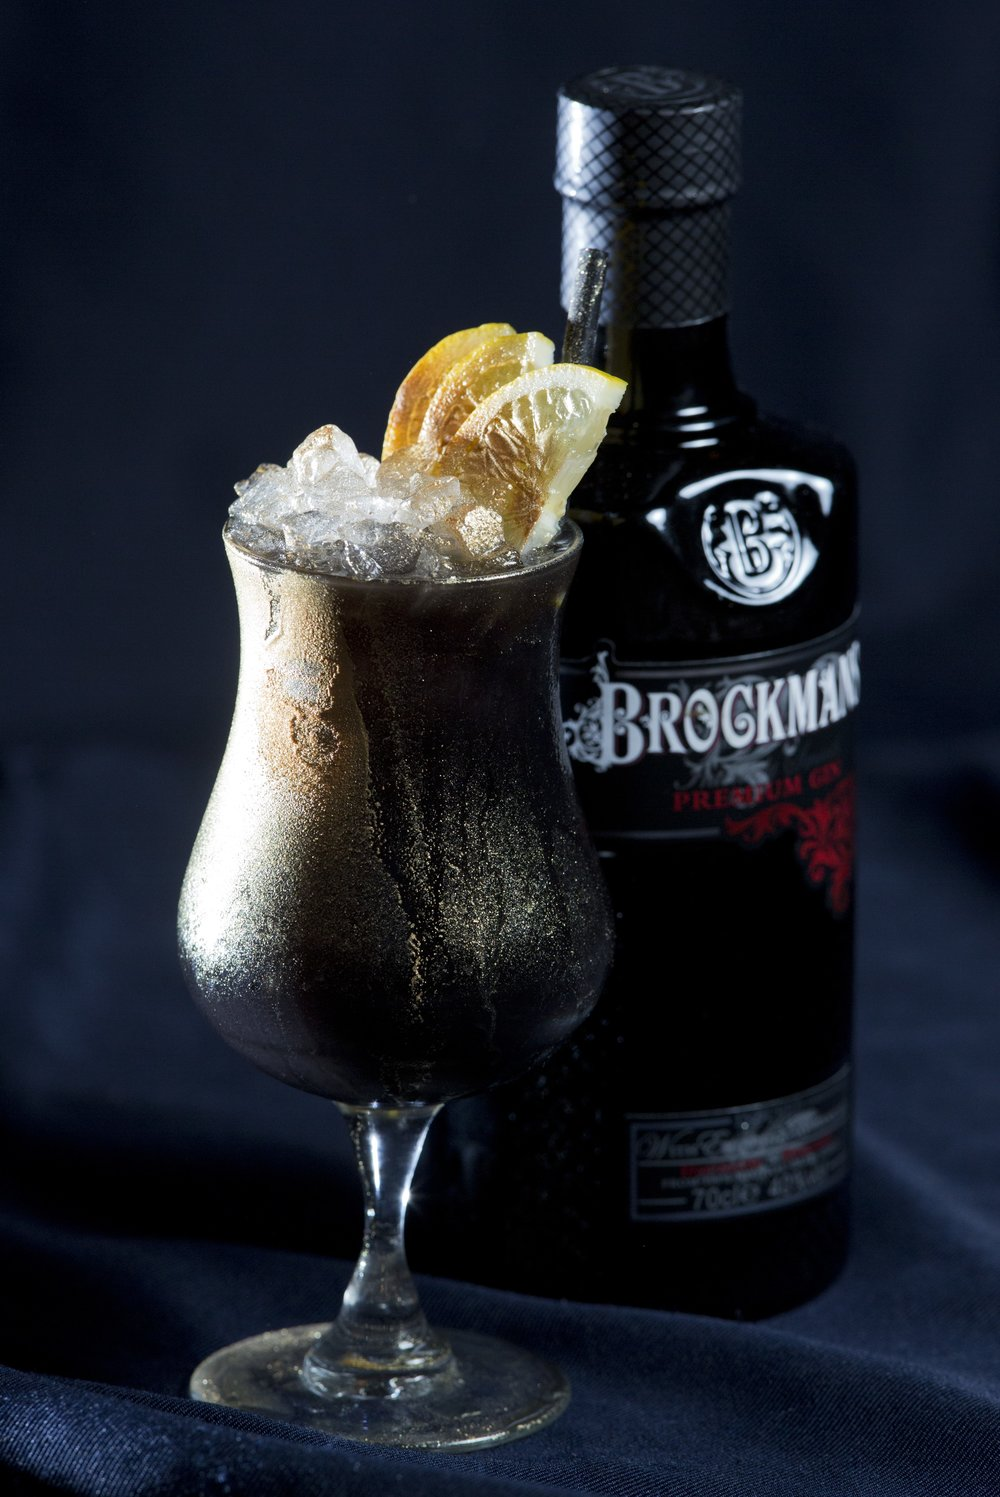 Brockmans Black and Gold Gin